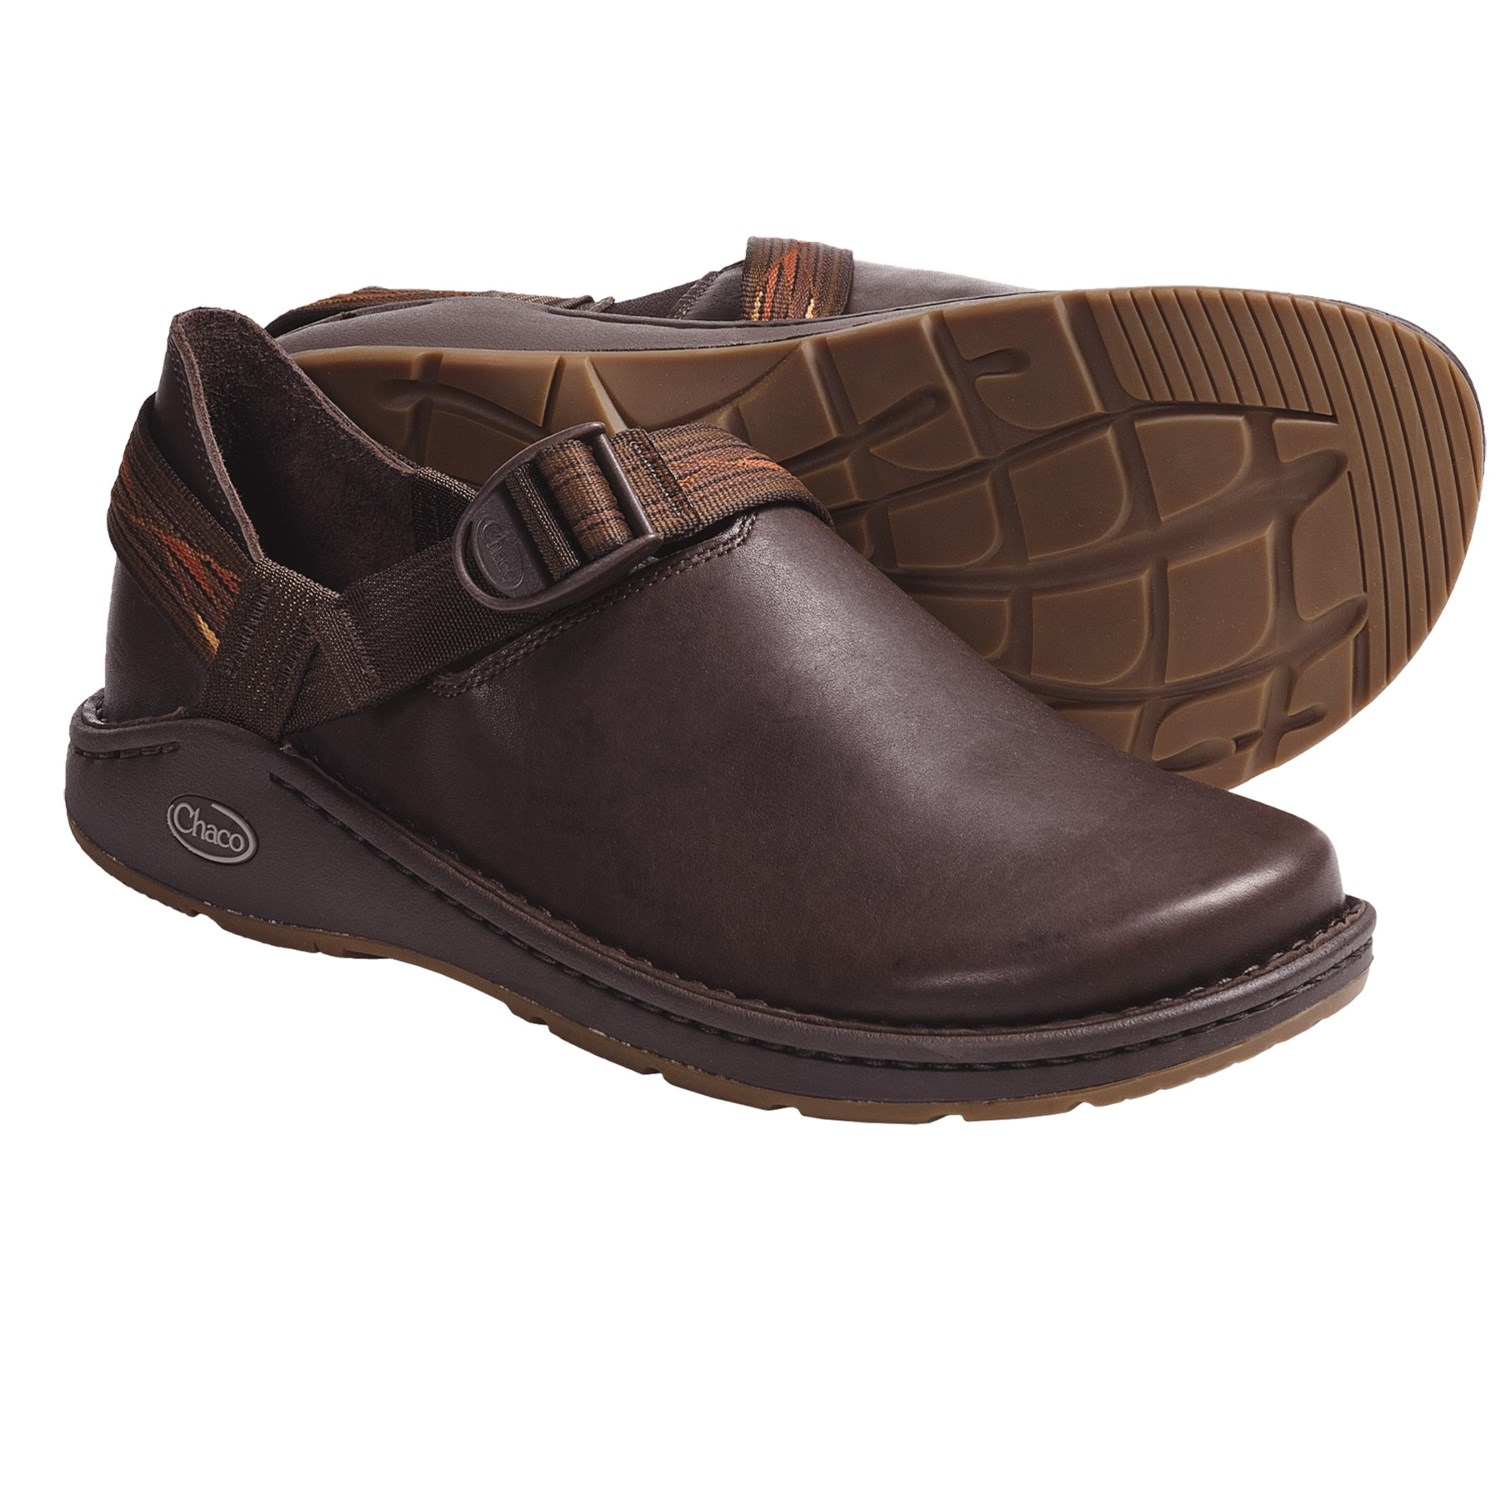 chaco pedshed shoes waxed suede for save 39